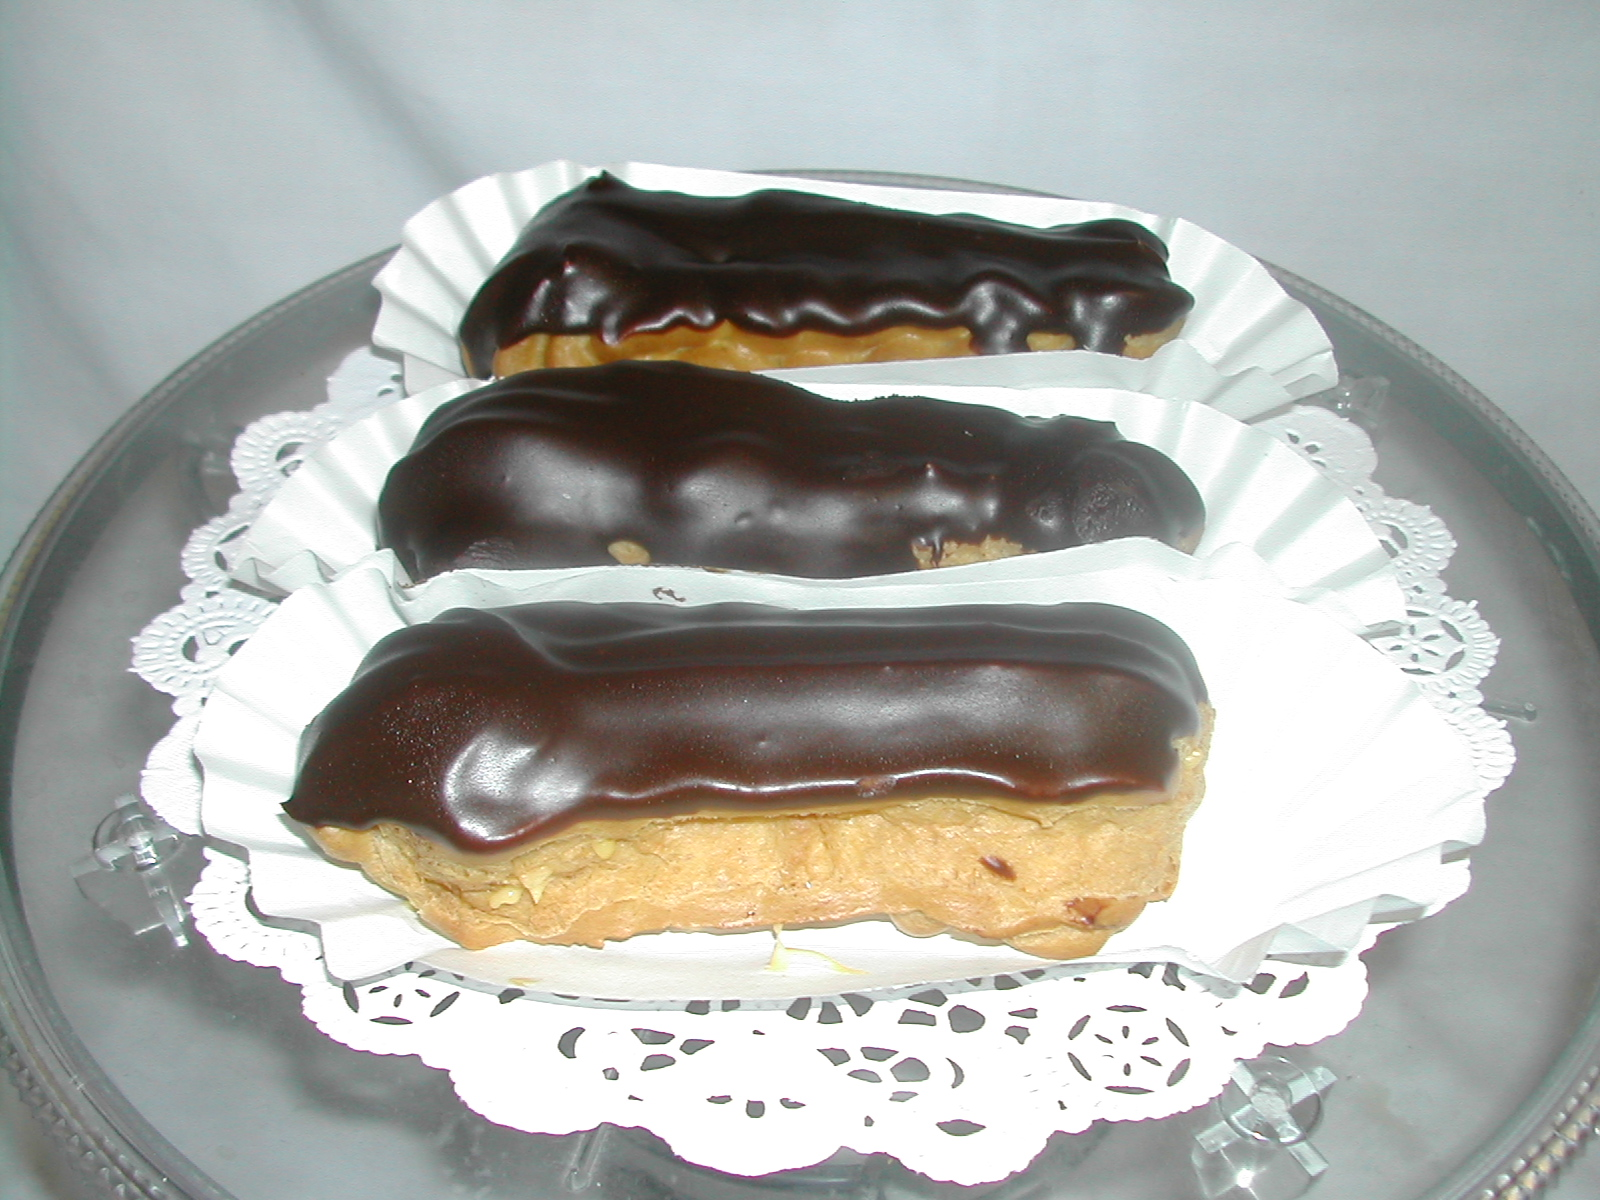 Keeping it Simple (KISBYTO): Chocolate Eclairs - Yummm